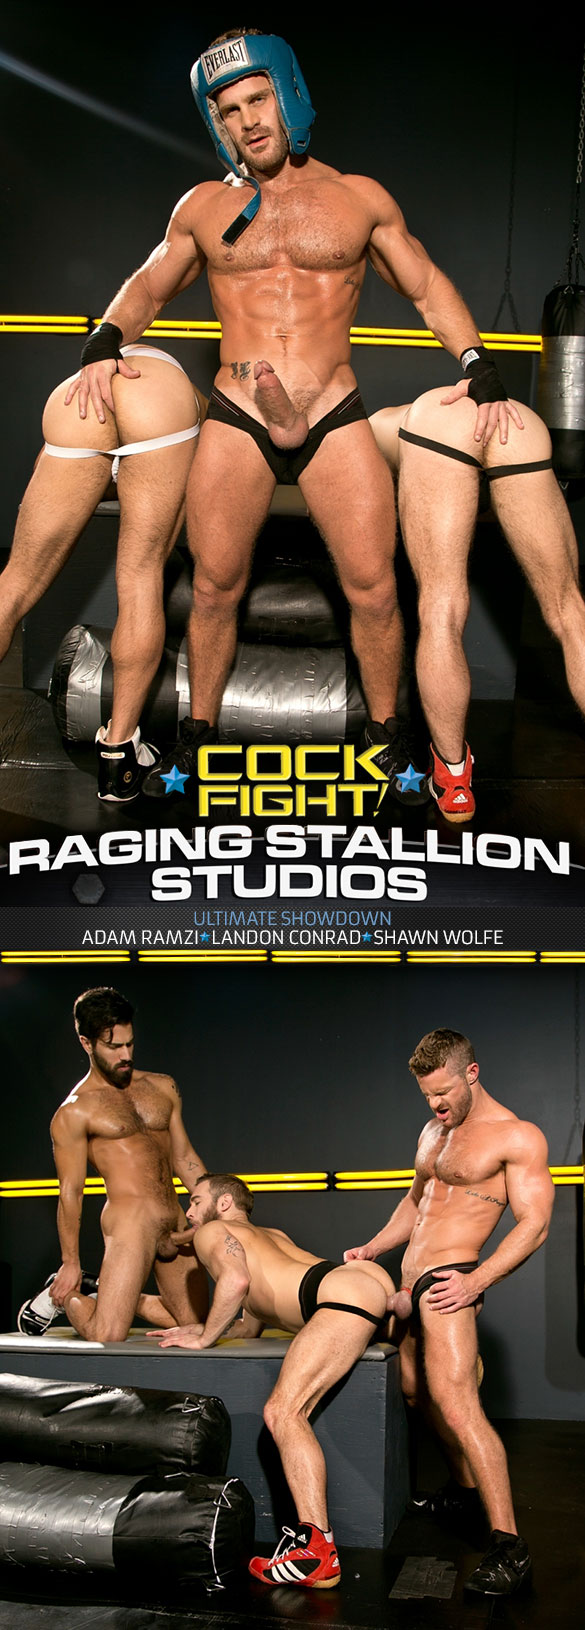 "Raging Stallion: Shawn Wolfe, Adam Ramzi and Landon Conrad in ""Cock Fight!"""